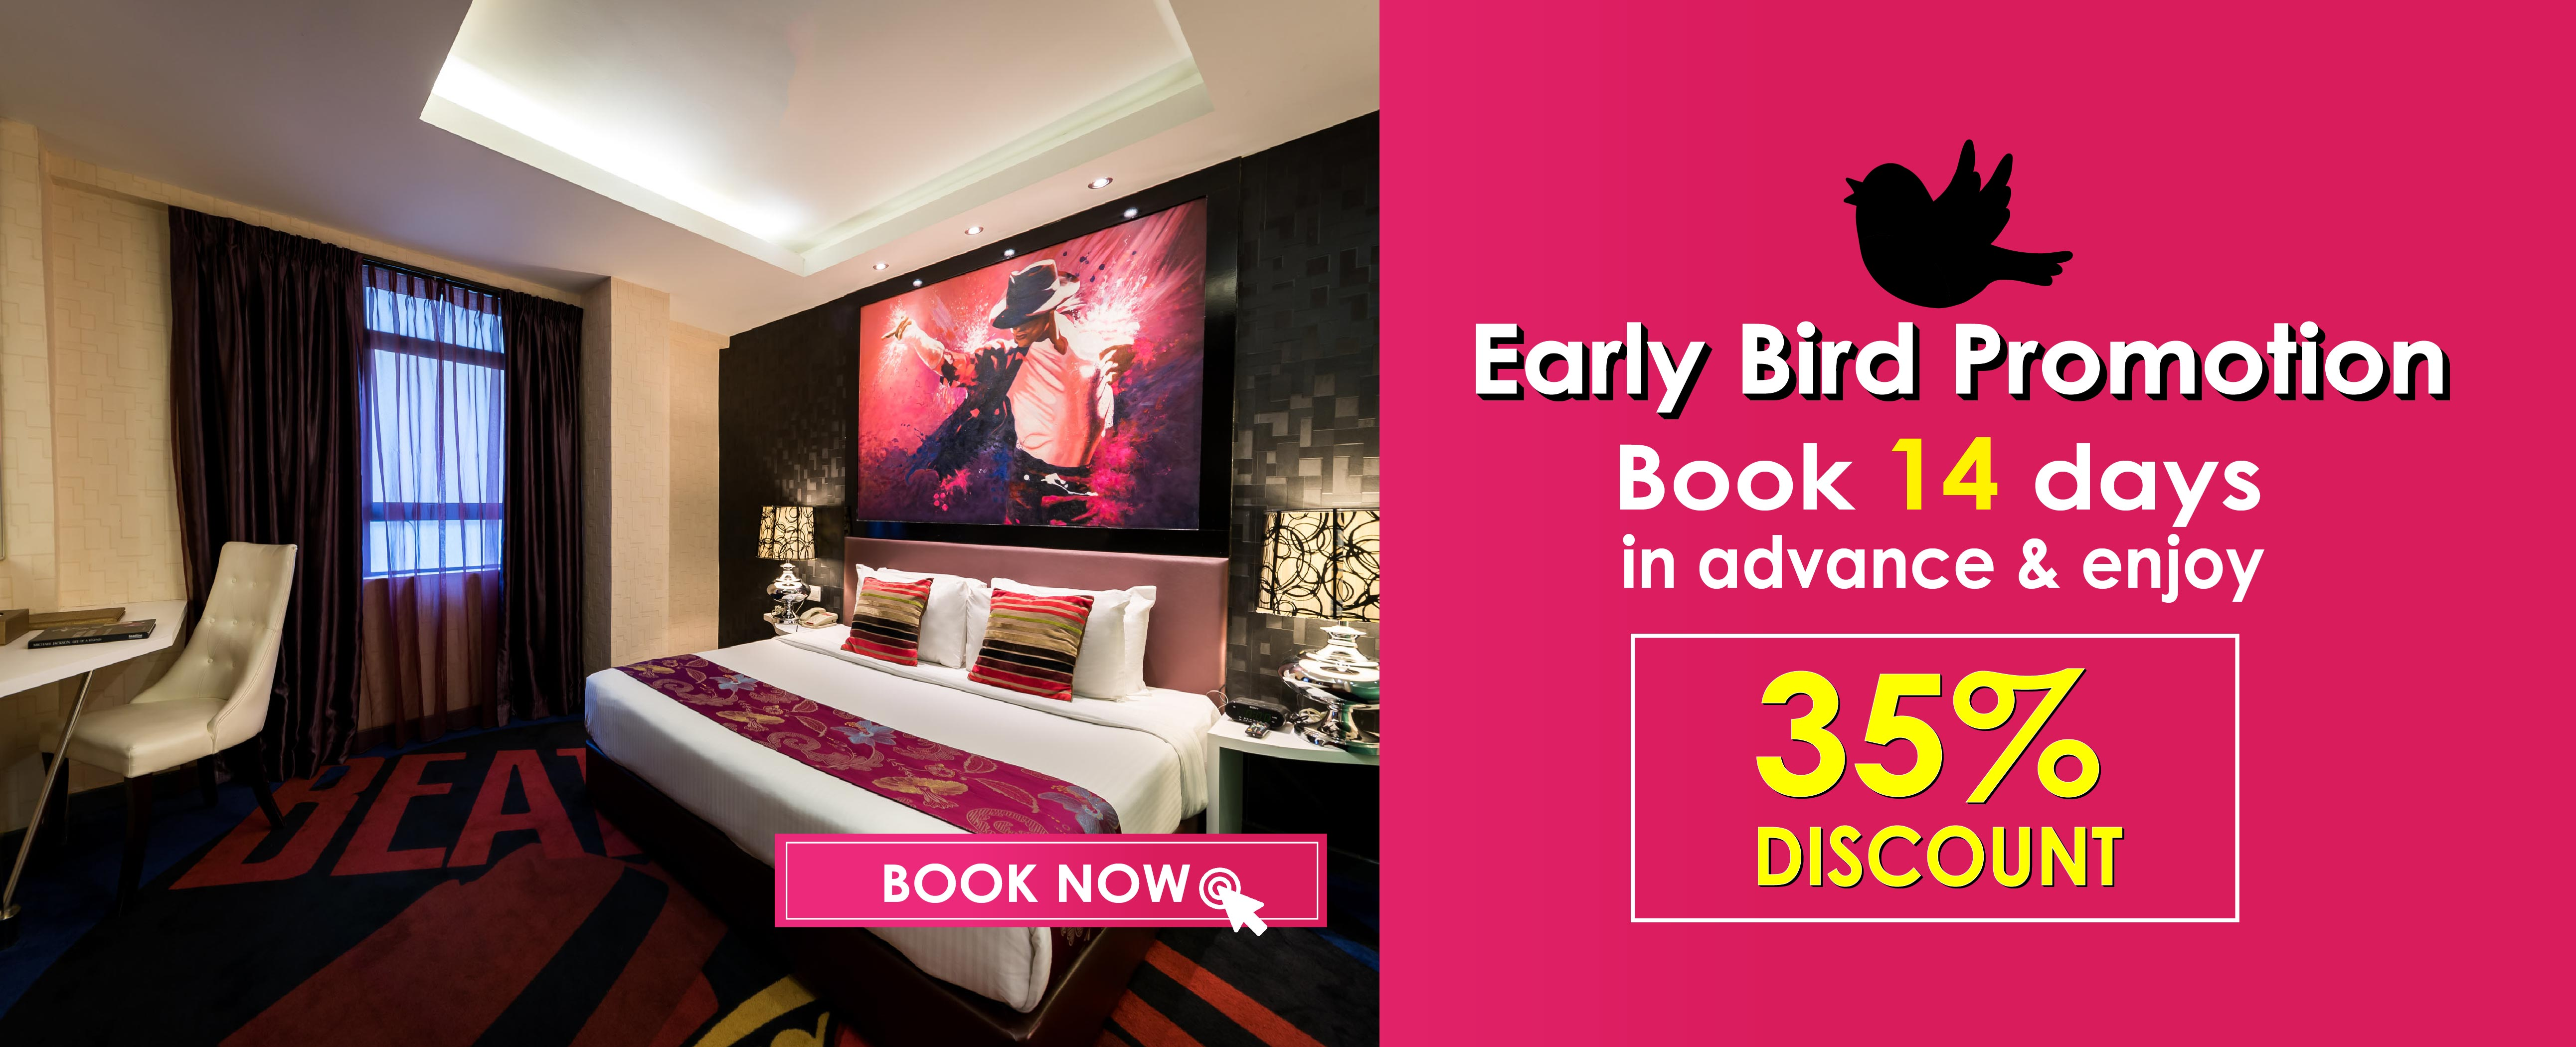 Hotel Maison Boutique Early Bird Promotion